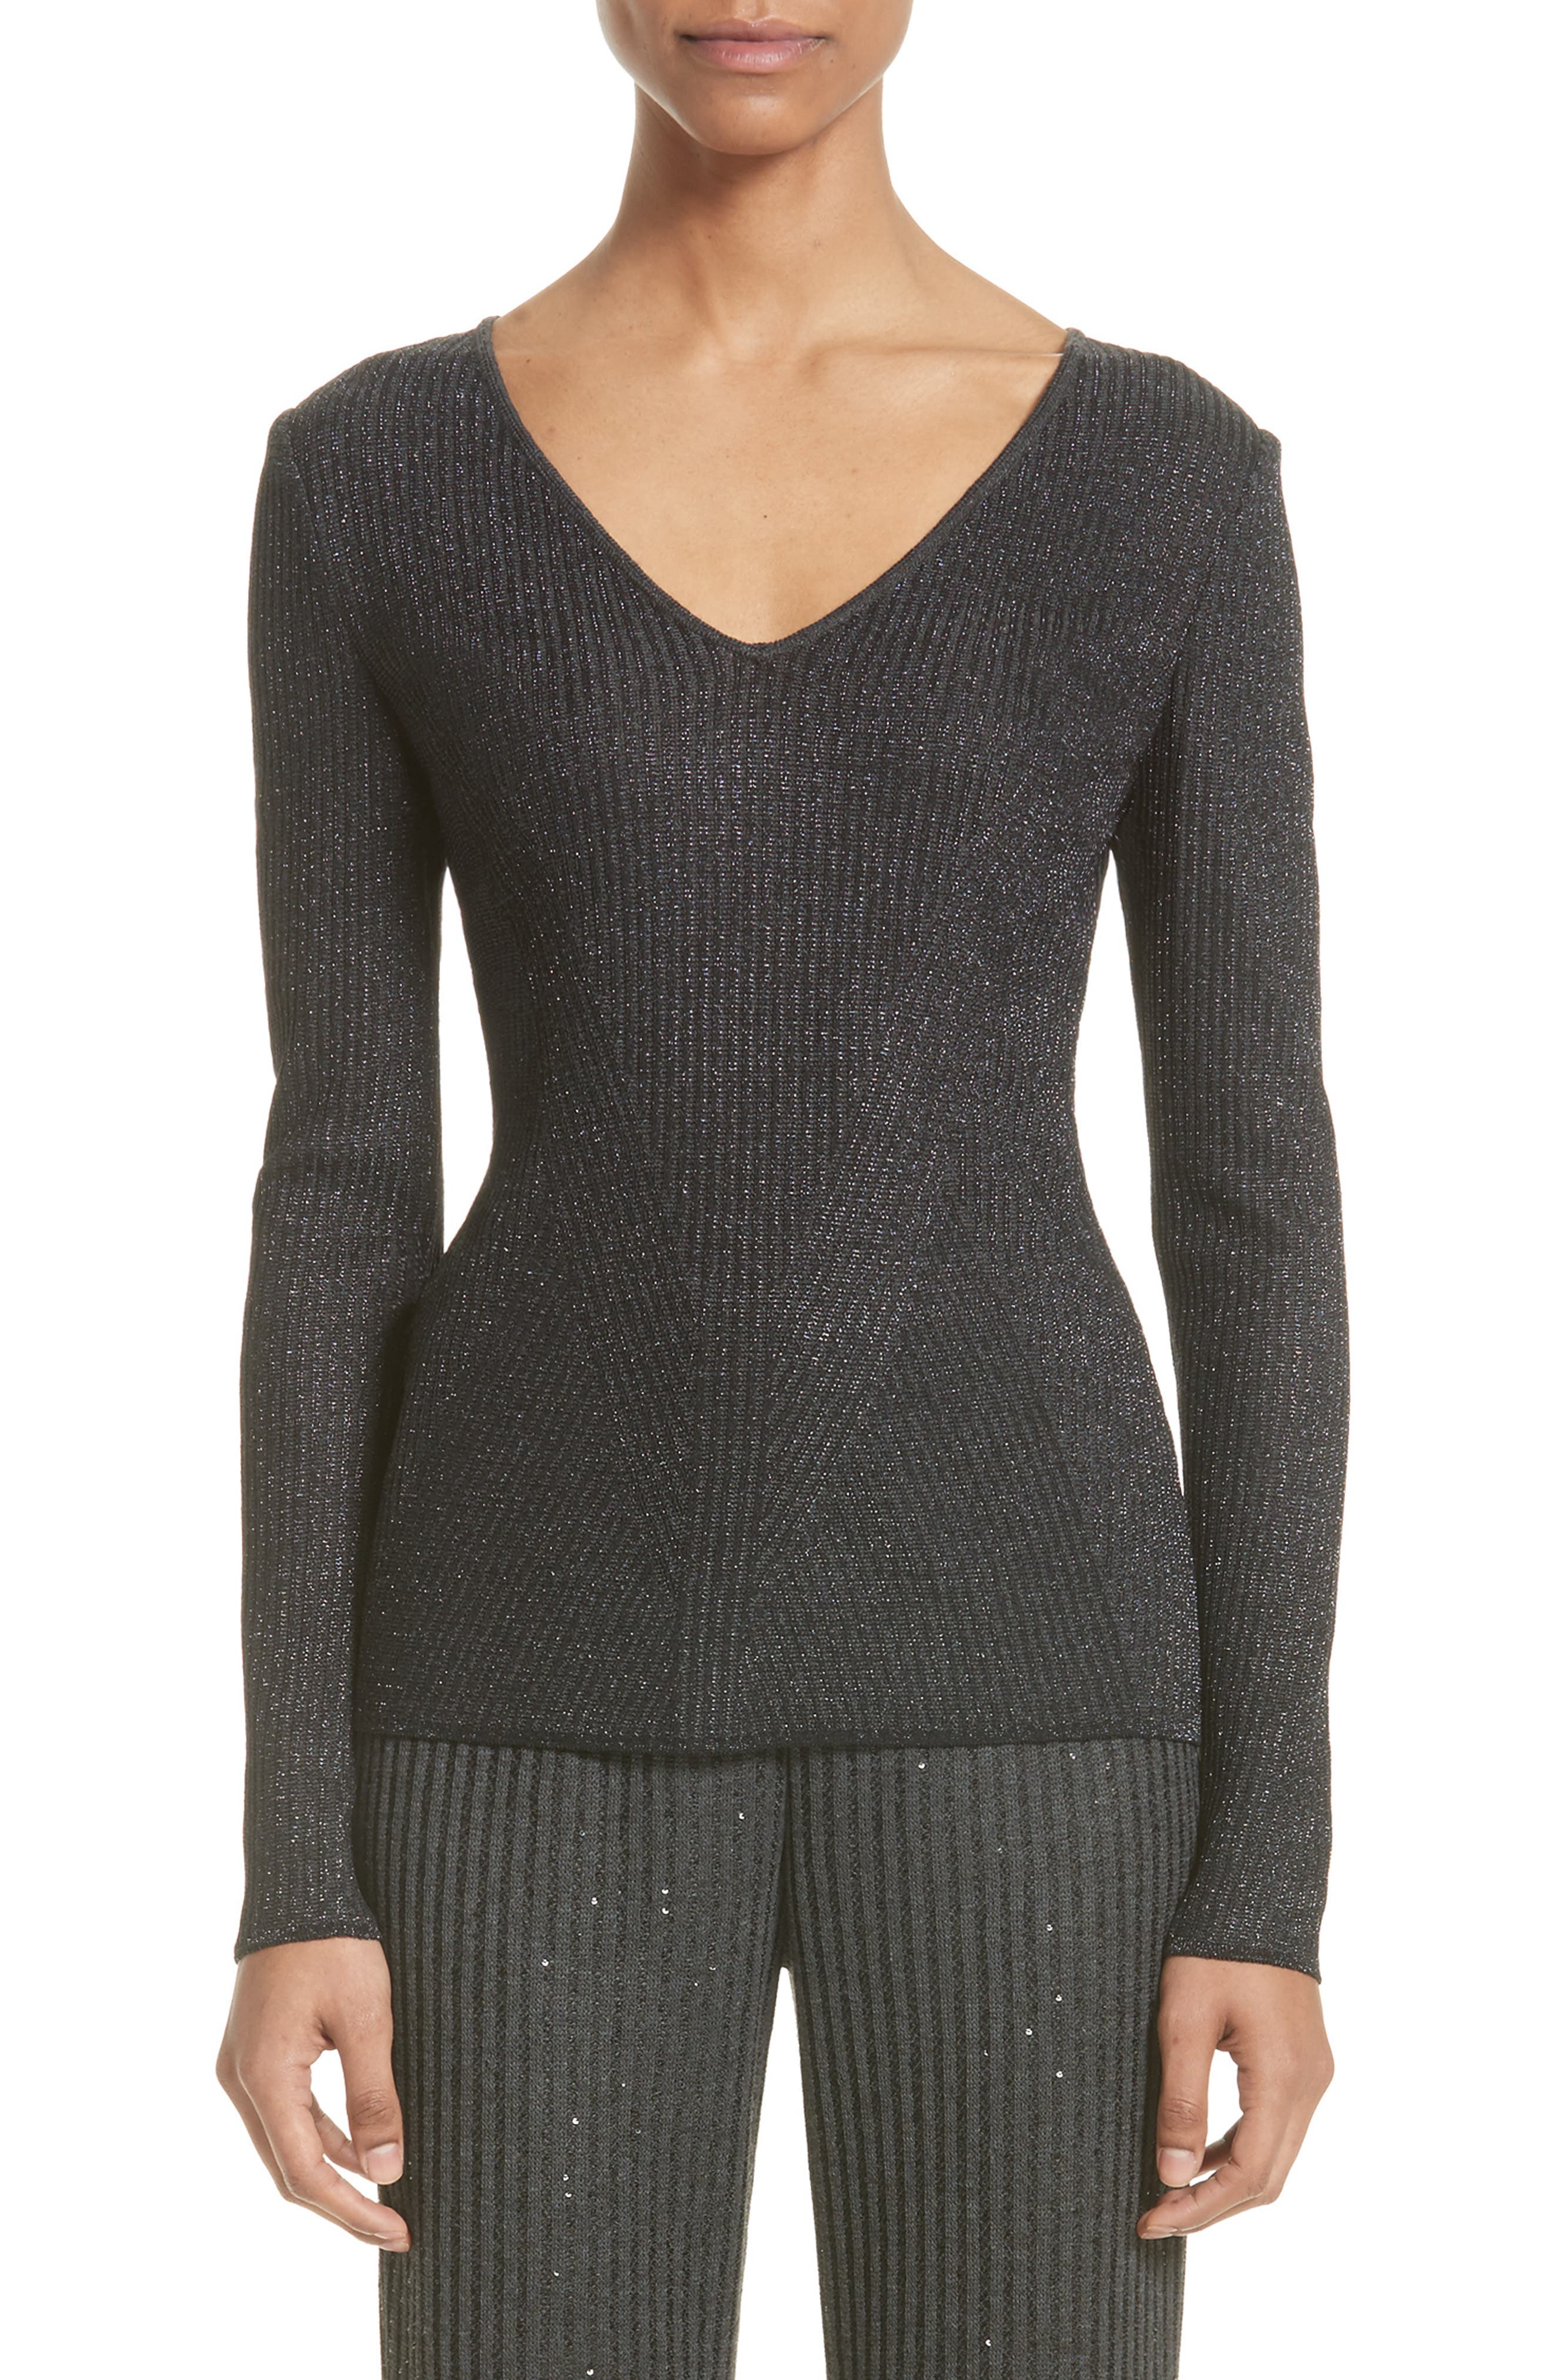 Engineered Rib Sparkle Knit Sweater,                         Main,                         color, 020